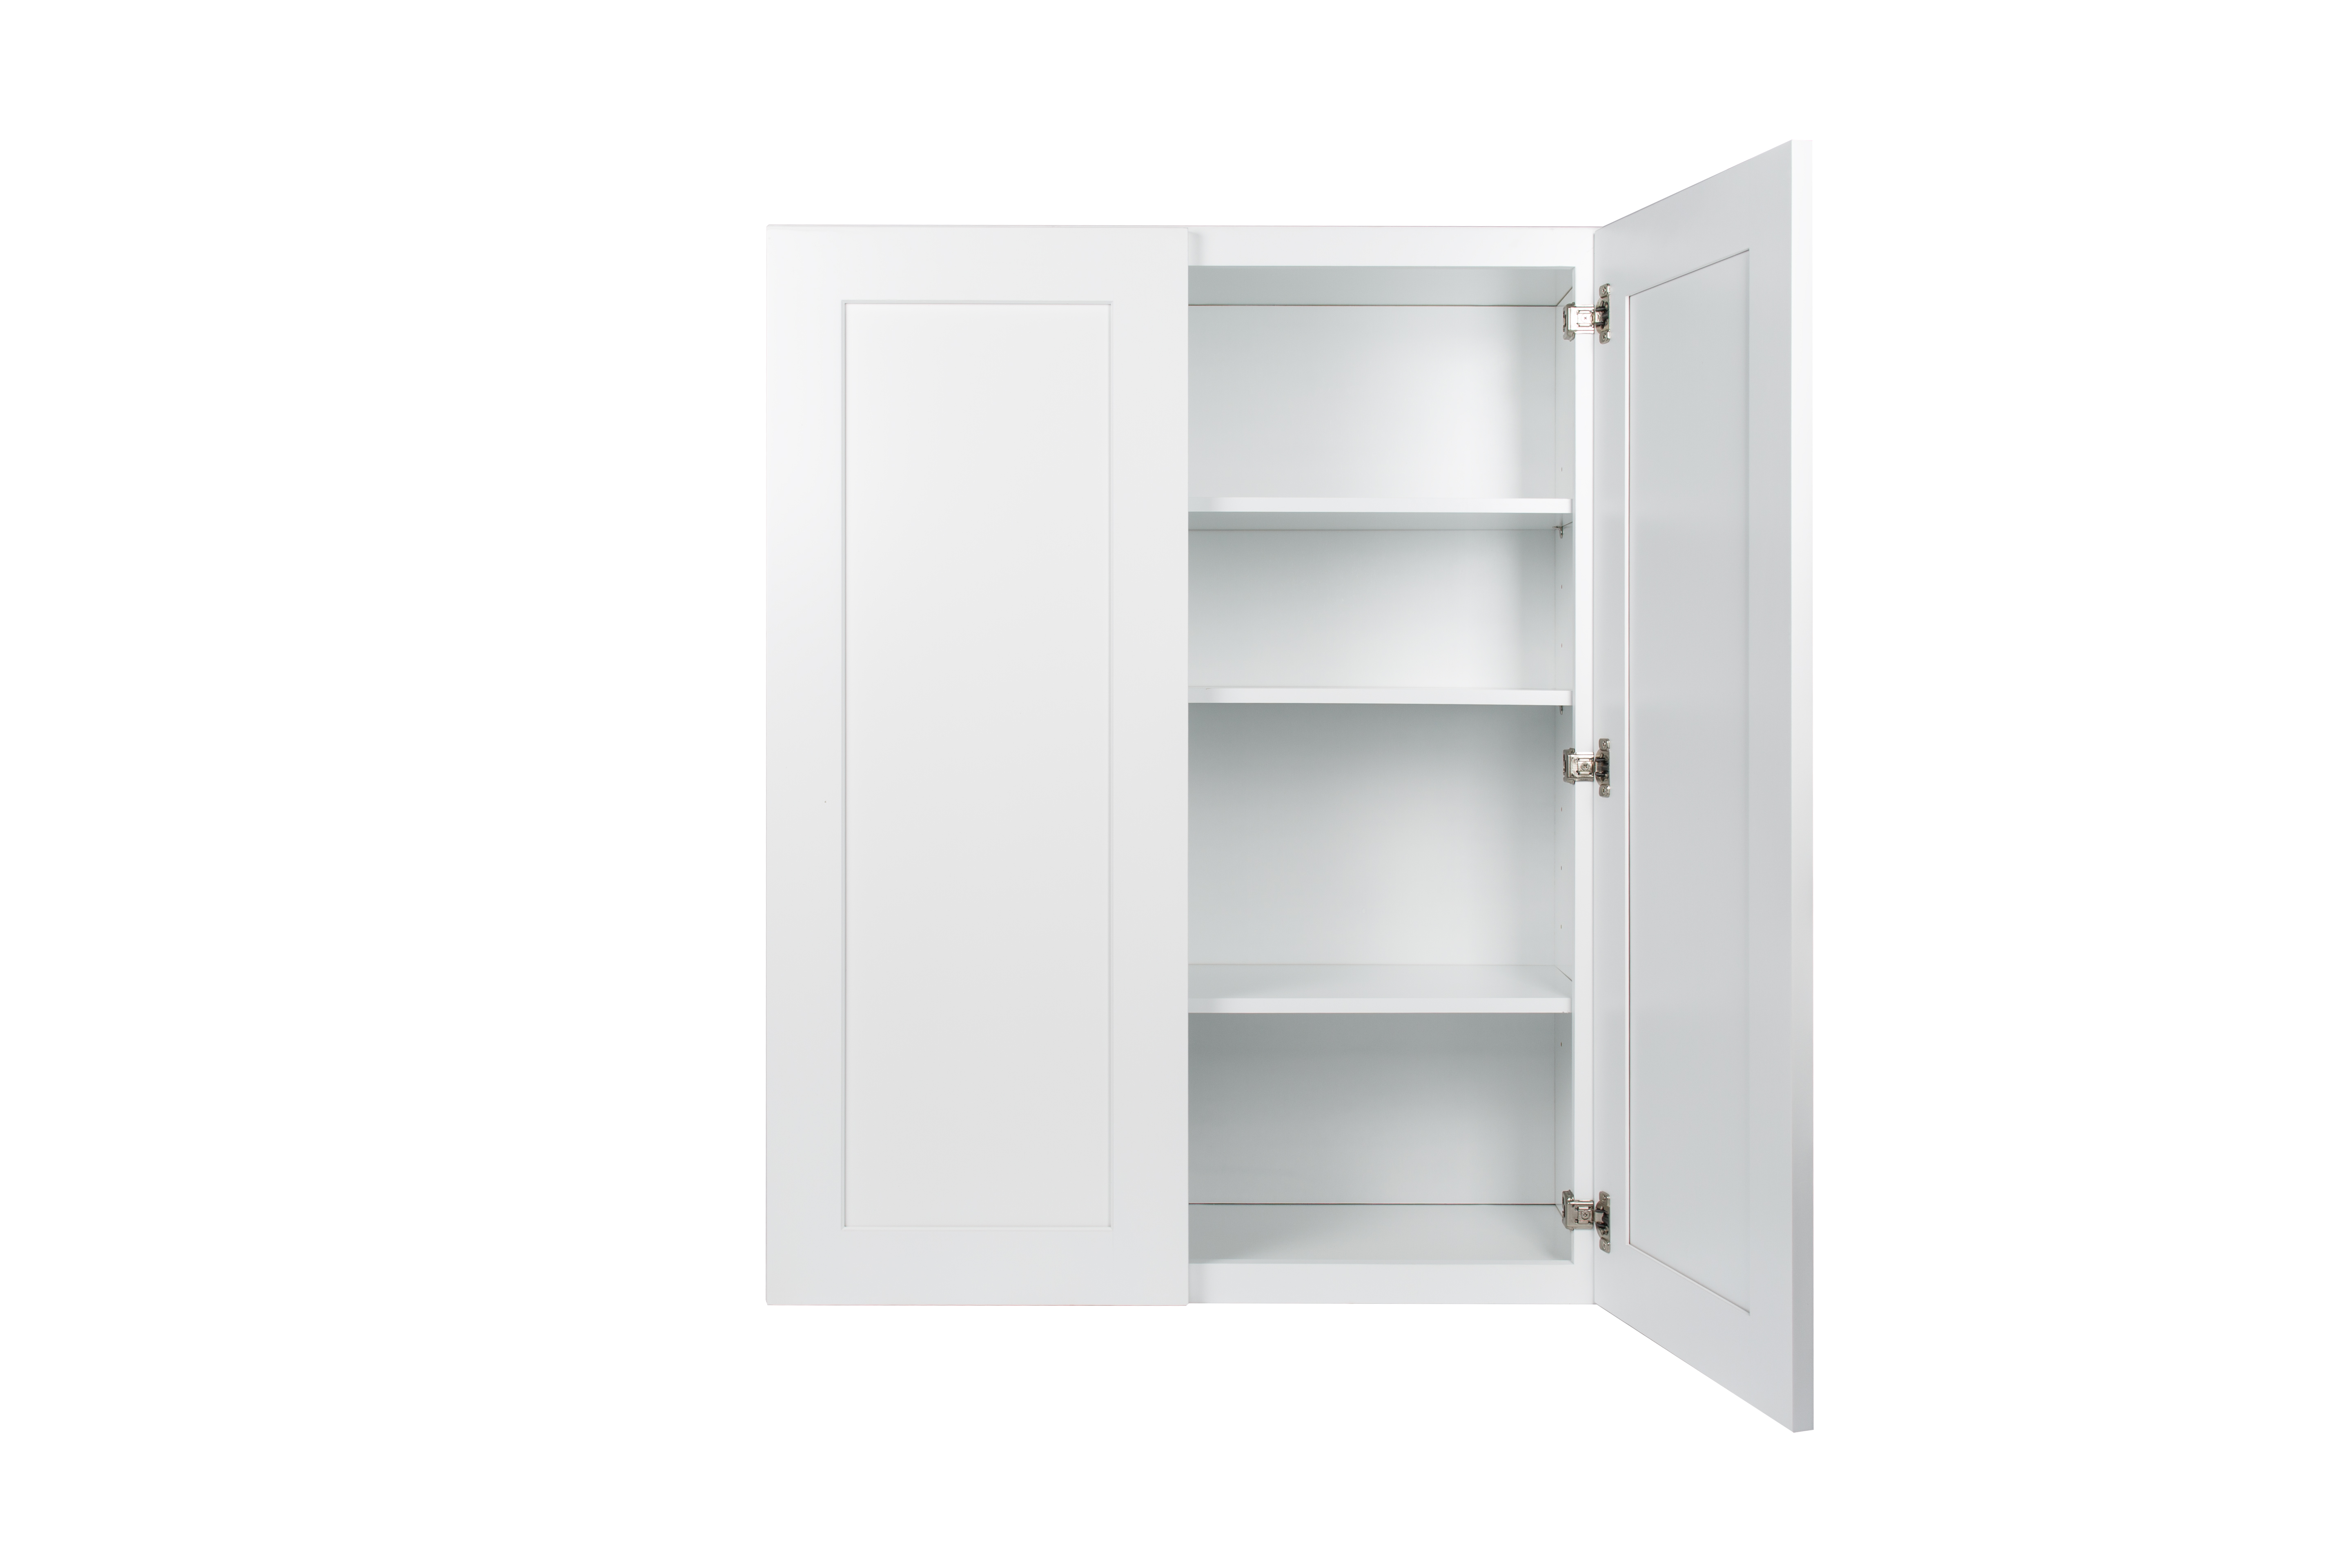 Ready to Assemble 24x32x12 in. Wall Cabinets with 2 Doors and 2 Adjustable Shelves